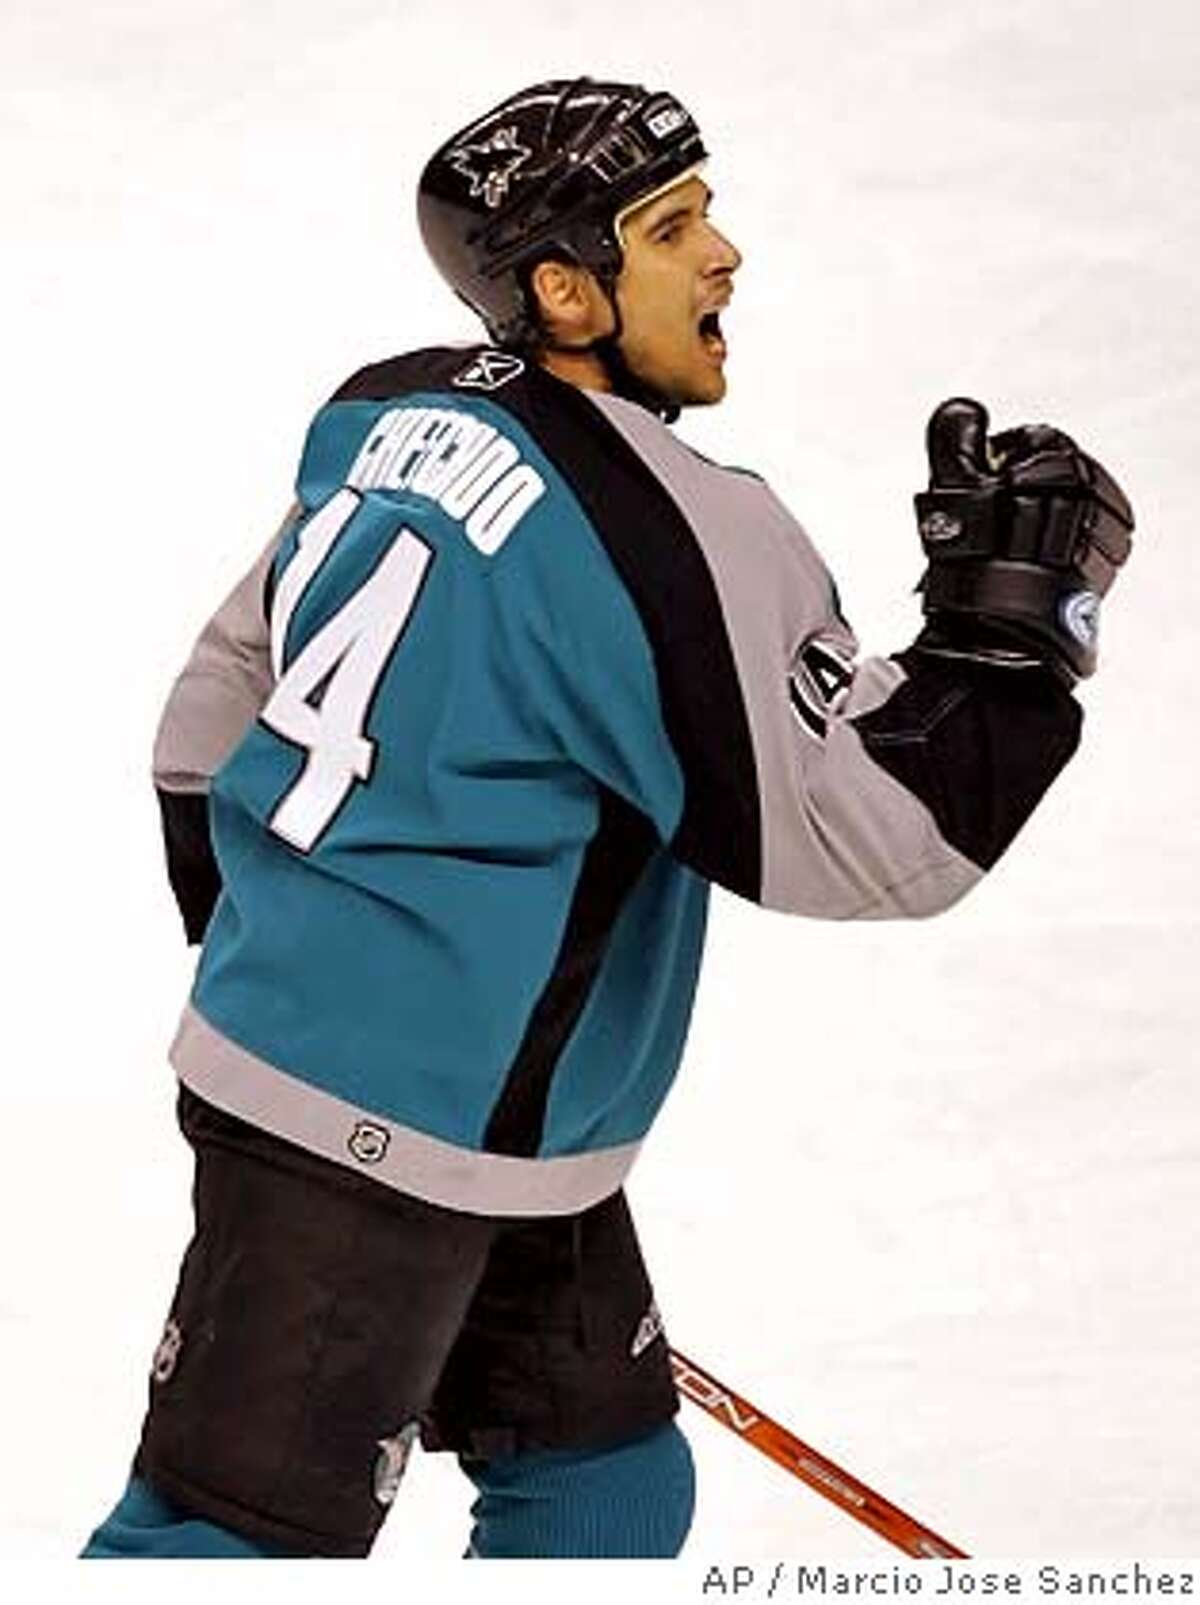 San Jose Sharks' Jonathan Cheechoo celebrates after a first-period goal against the Colorado Avalanche in an NHL hockey game in San Jose, Calif., Sunday, March , 19, 2006. (AP Photo/Marcio Jose Sanchez) EFE OUT